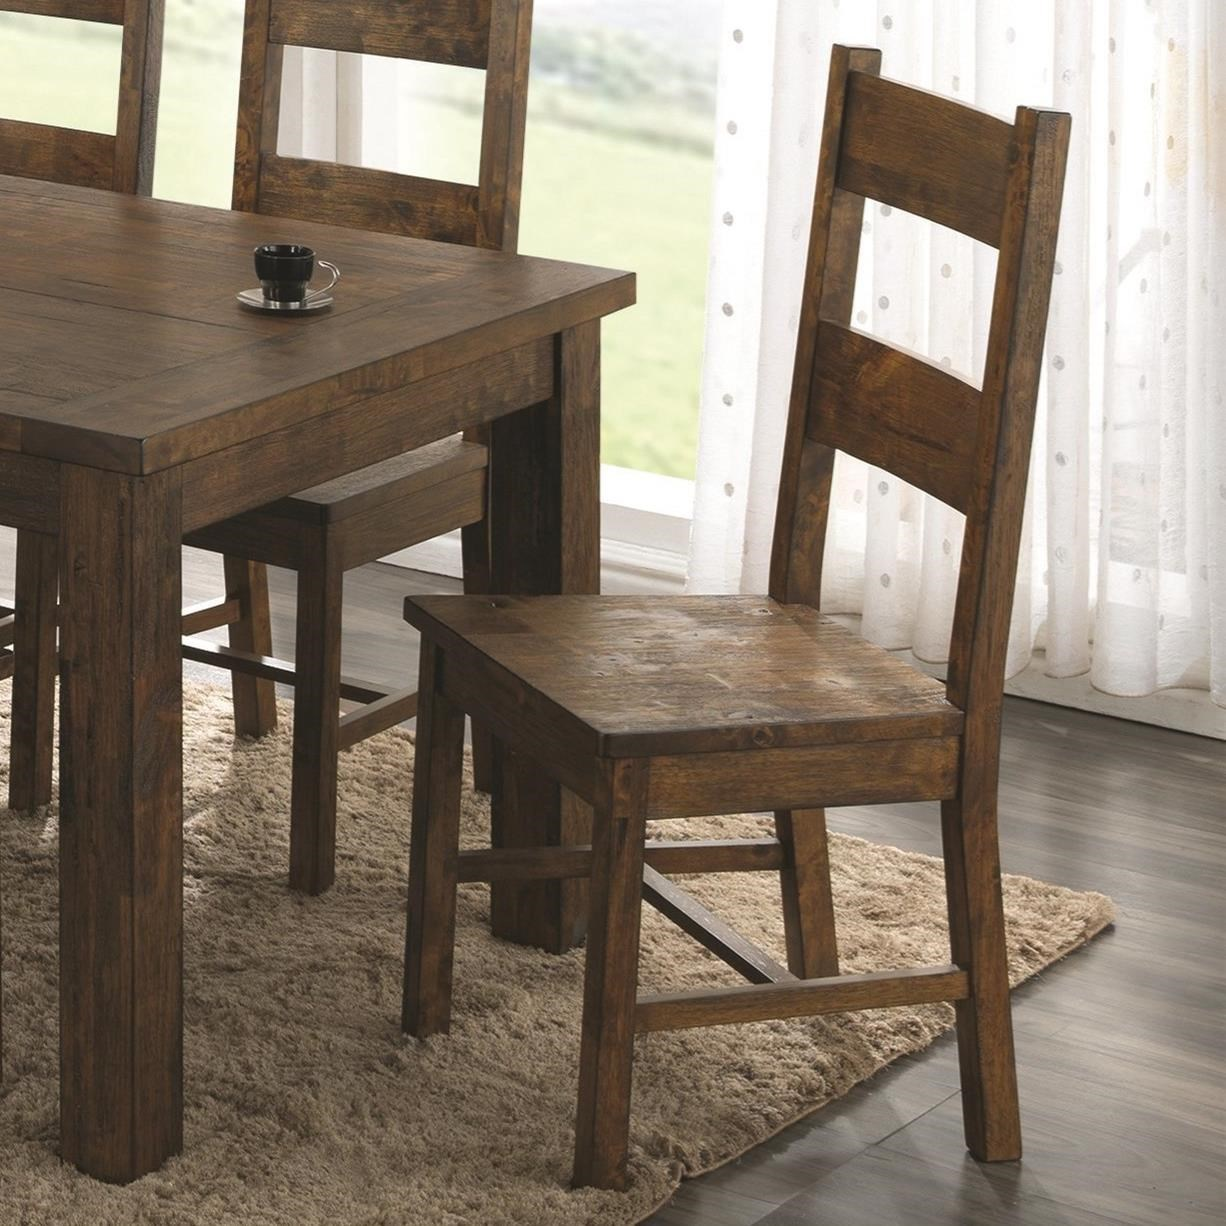 Coaster Coleman Wooden Dining Chair with Rustic Finish & Coaster Coleman Wooden Dining Chair with Rustic Finish | A1 ...